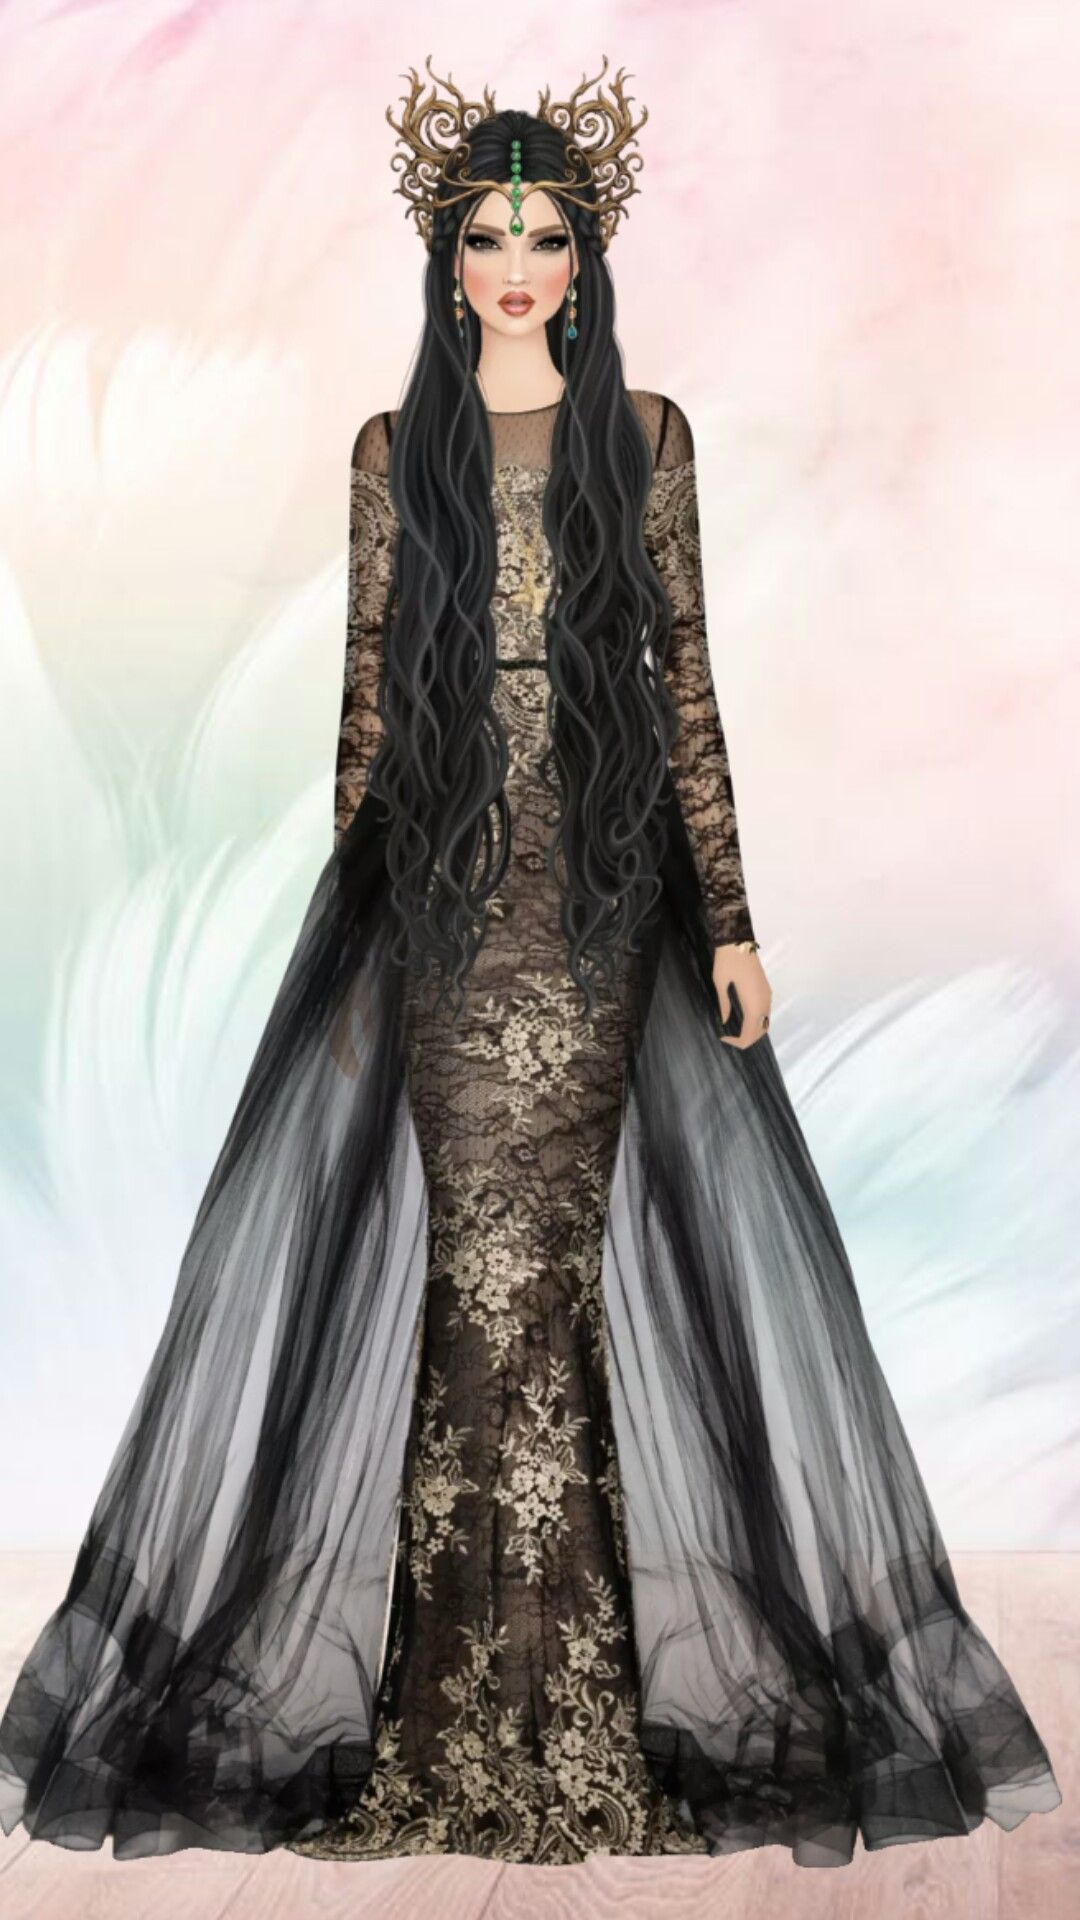 Covet Fashion Fashion Fashion Artwork Fashion Dress Up Games